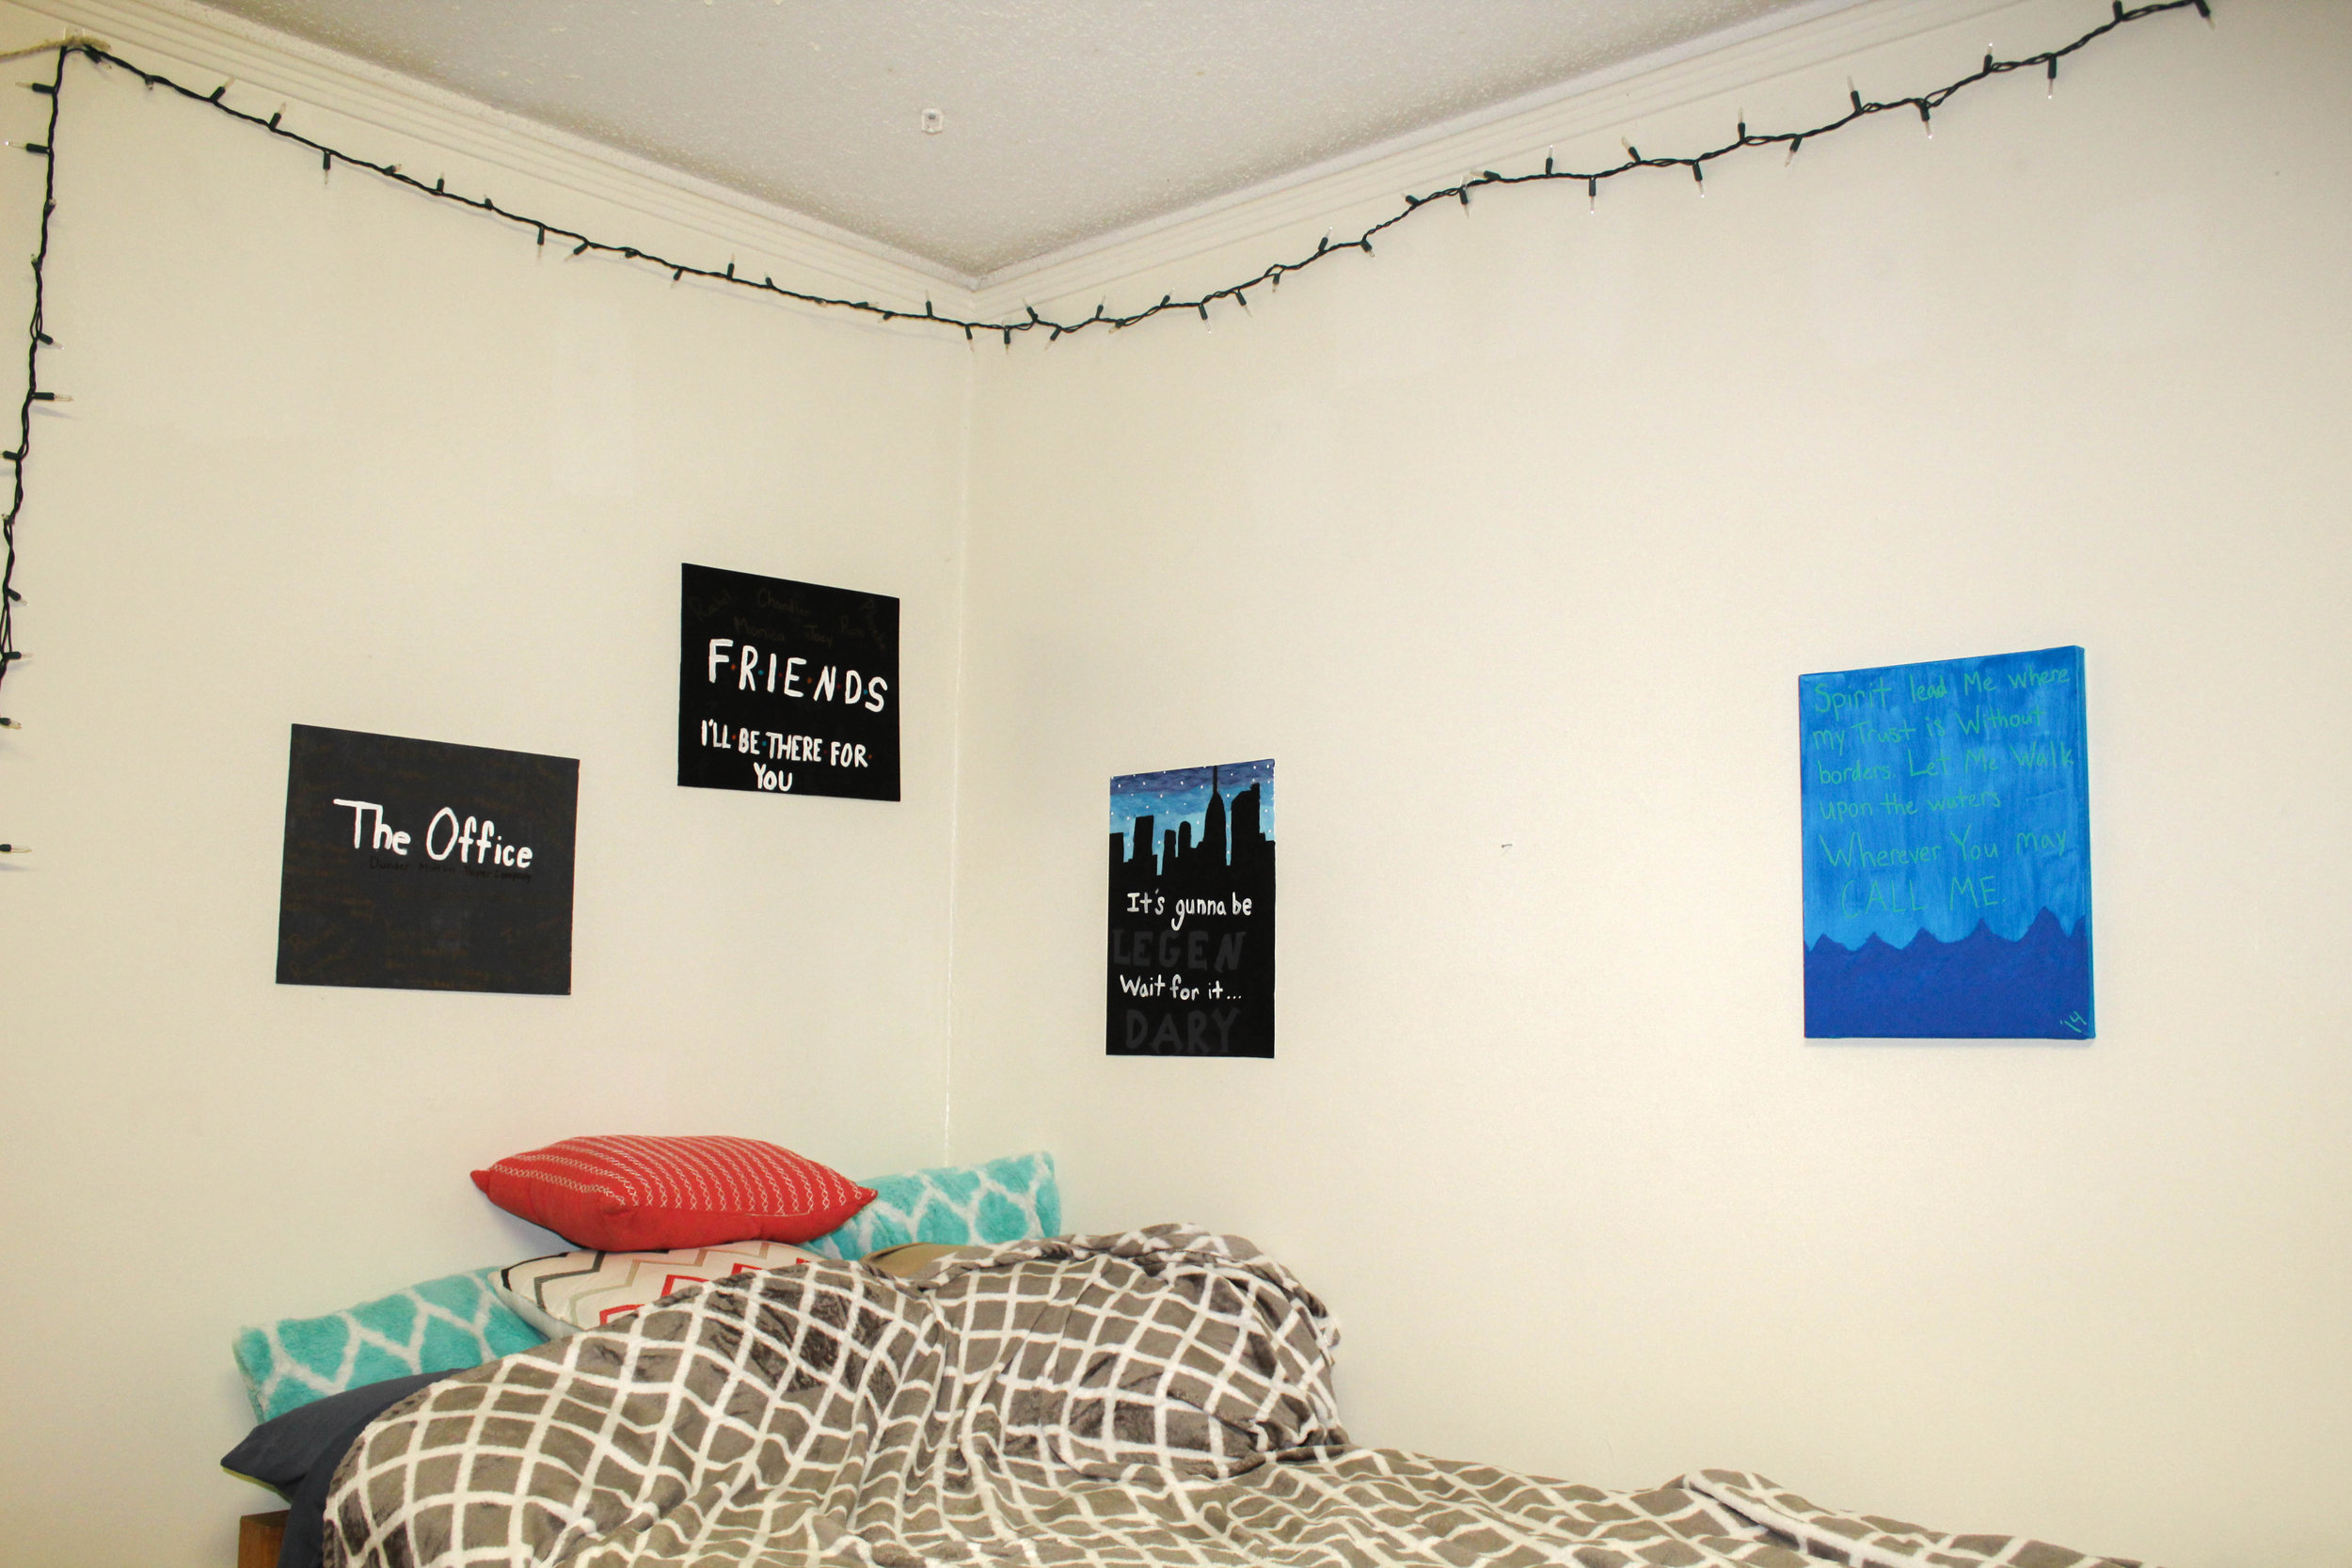 Kayla Gibson, senior, shows her love for multiple TV shows by hanging painted canvases in her room displaying their titles.